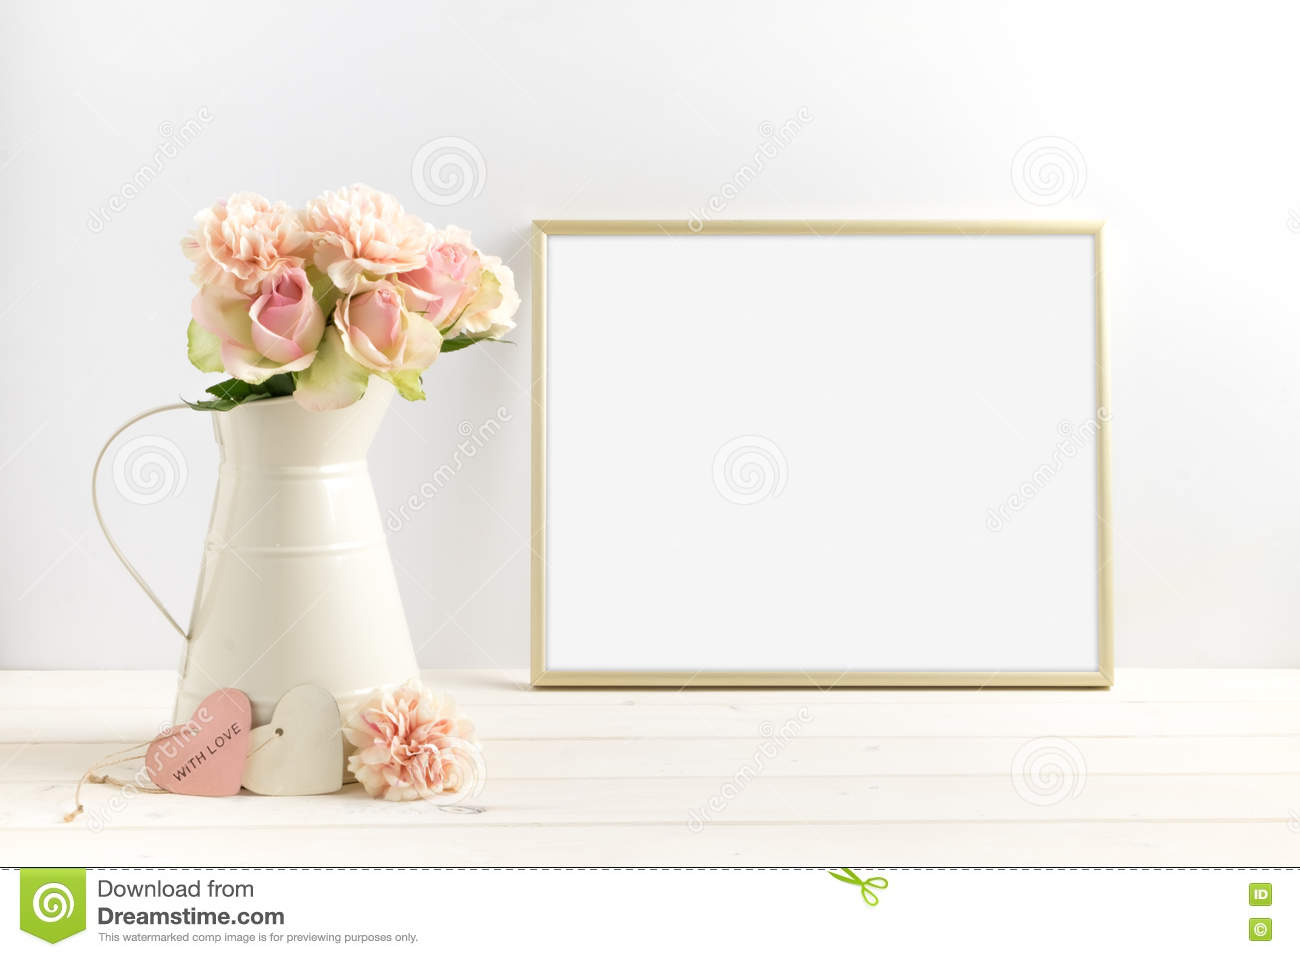 b5e5a9471333 Mockup styled stock photograph of cream jug of flowers next to a Gold frame.  You can place your business promotion